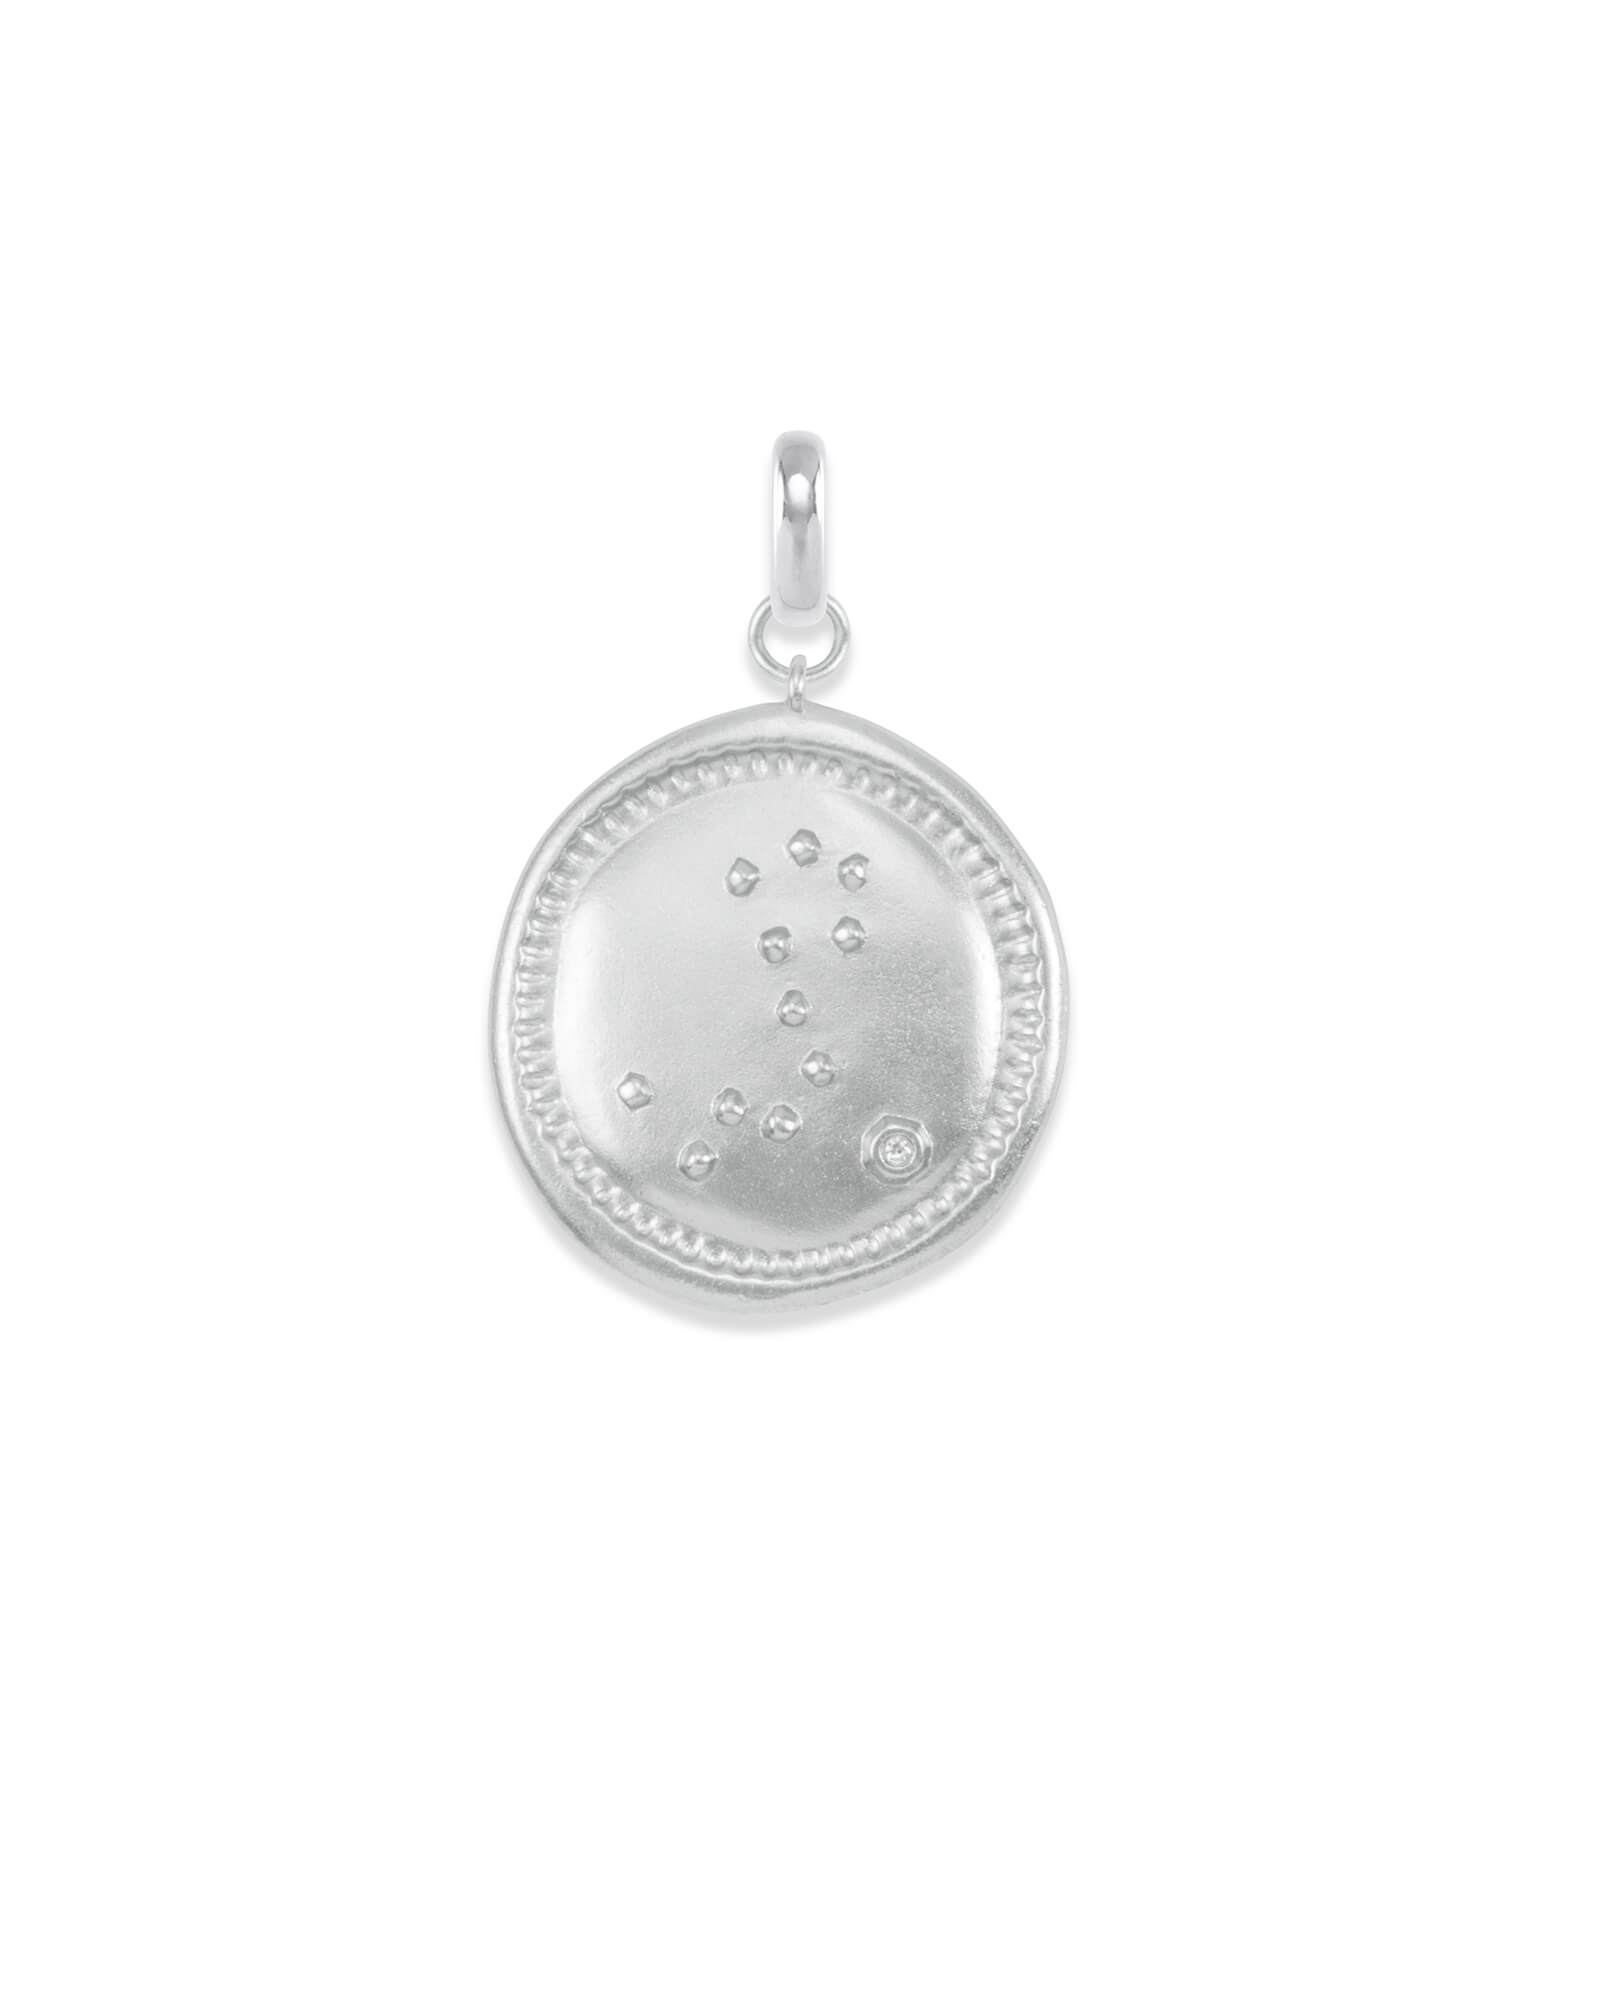 Pisces Coin Charm in Silver